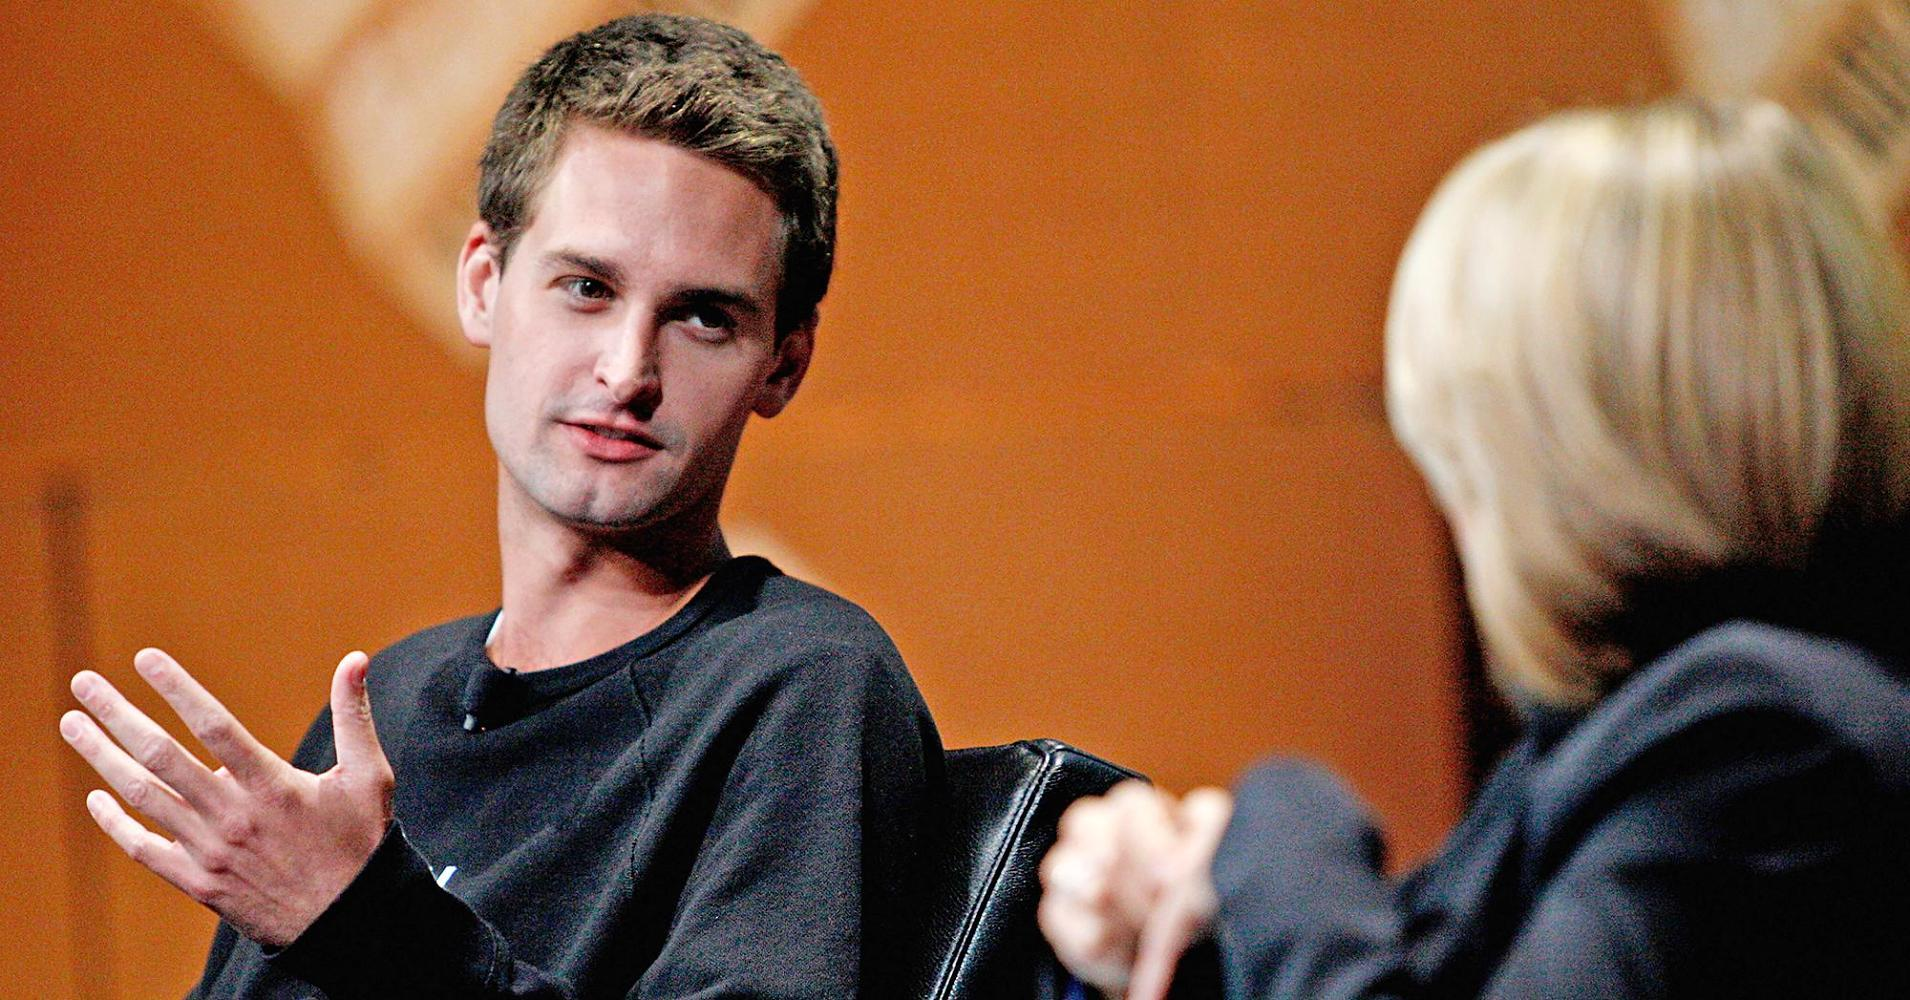 Snapchat CEO sees a bubble, blames interest rates